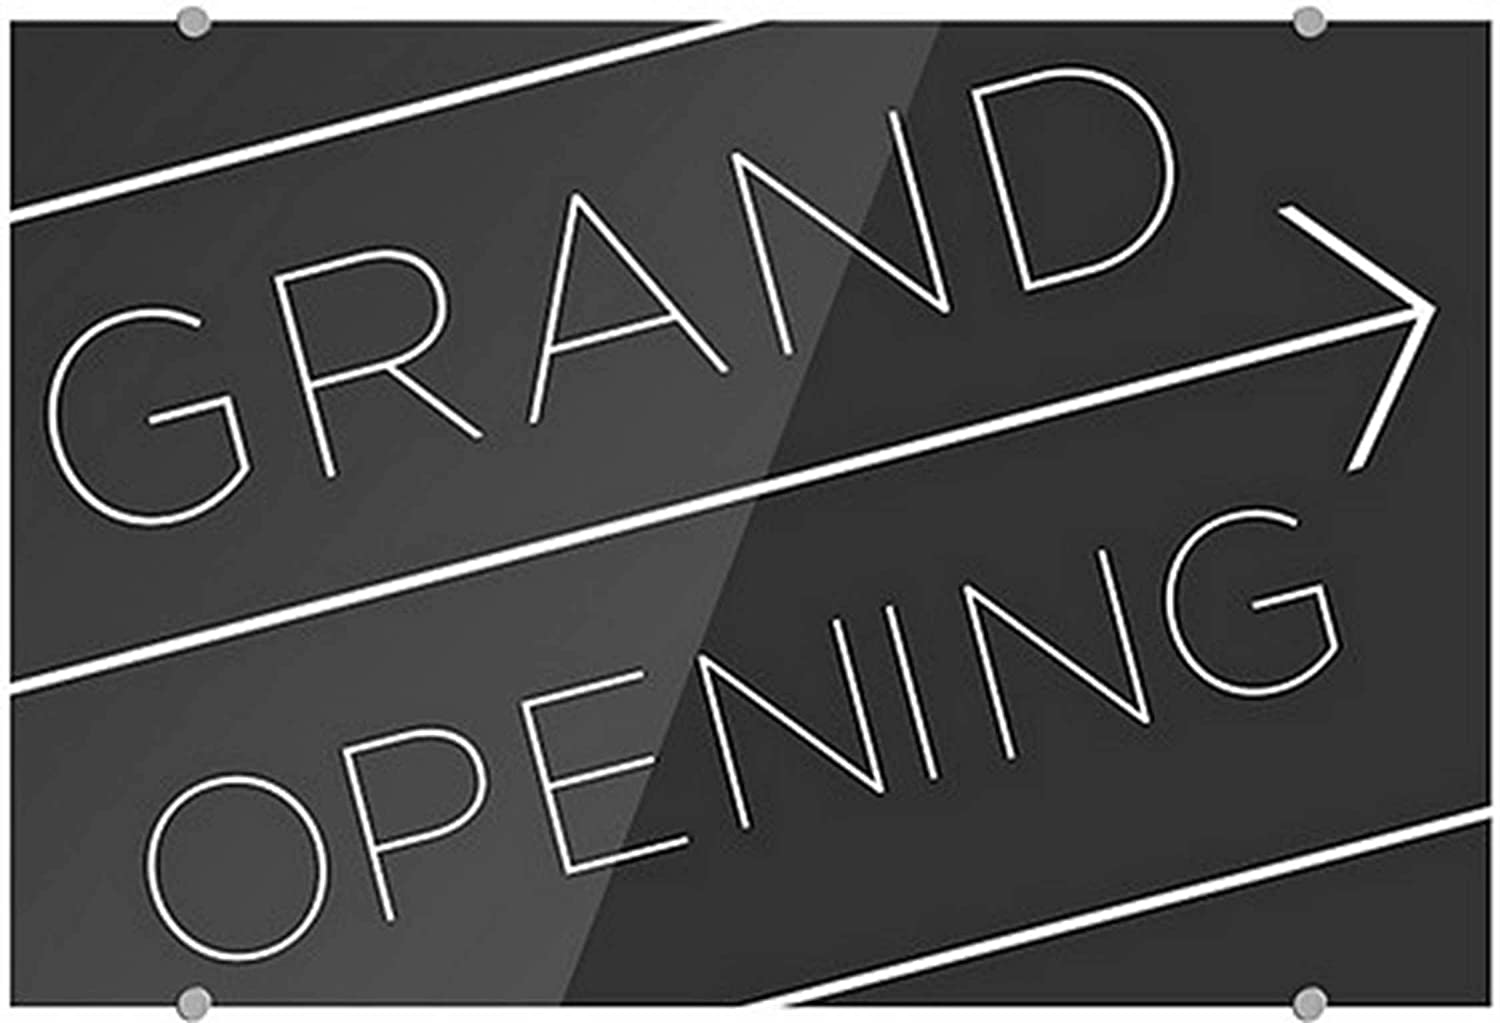 CGSignLab 2453127_5mbsw_36x24_None Grand Opening 3m Popular overseas -Basic Black Limited price